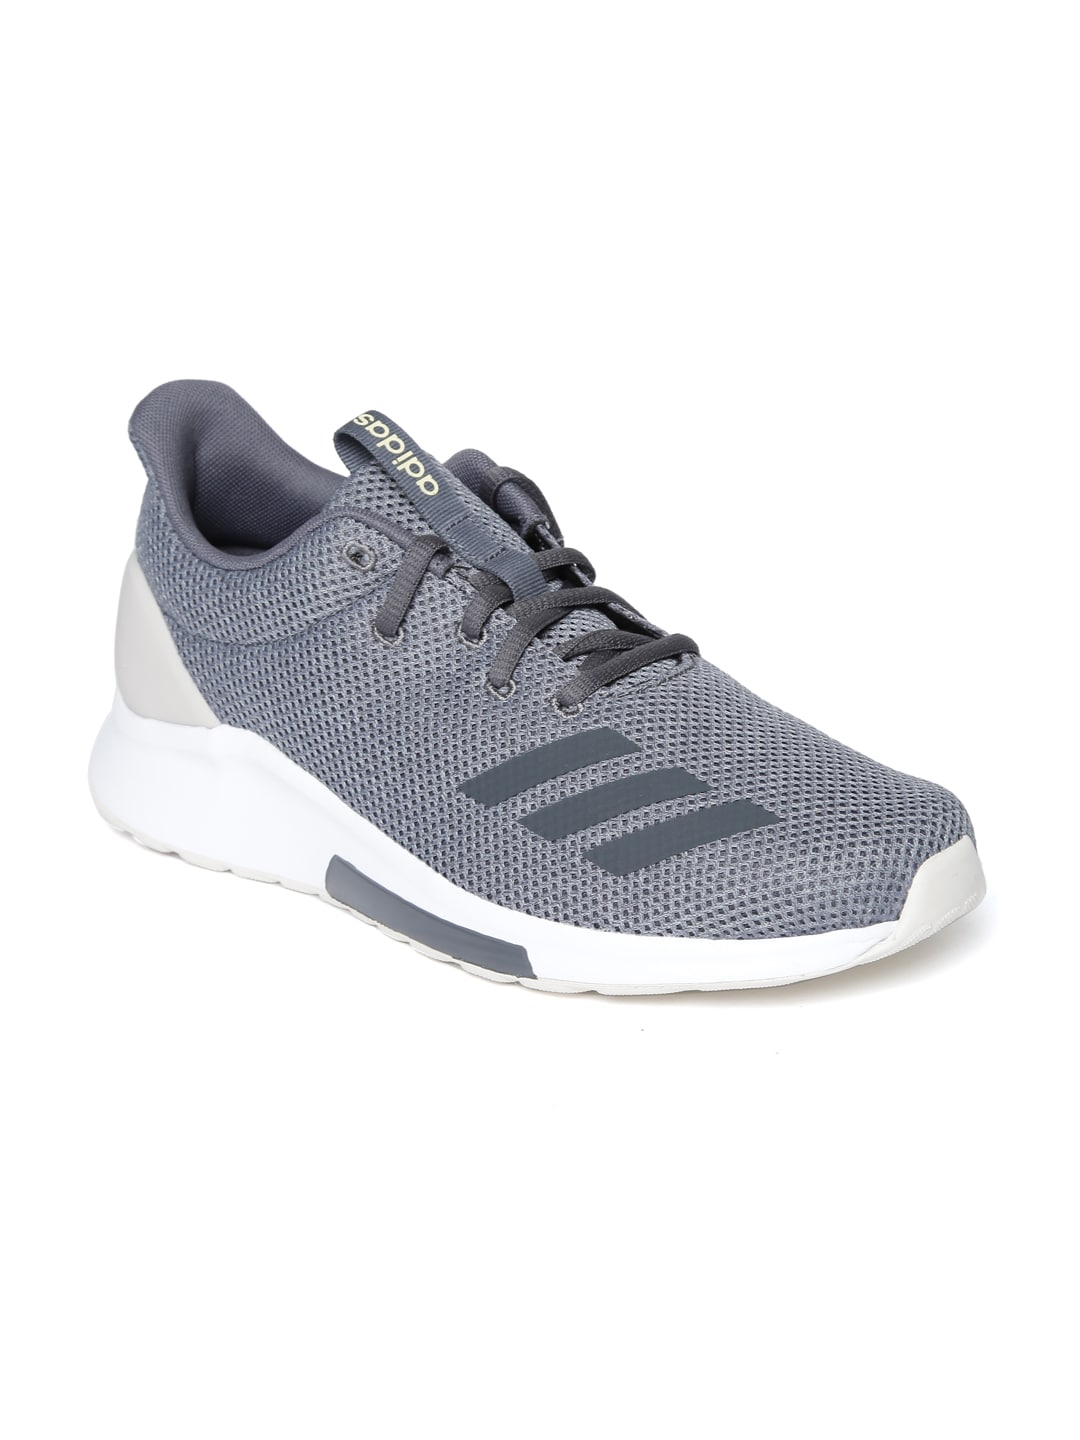 fd87f405e62fc2 Women s Adidas Shoes - Buy Adidas Shoes for Women Online in India